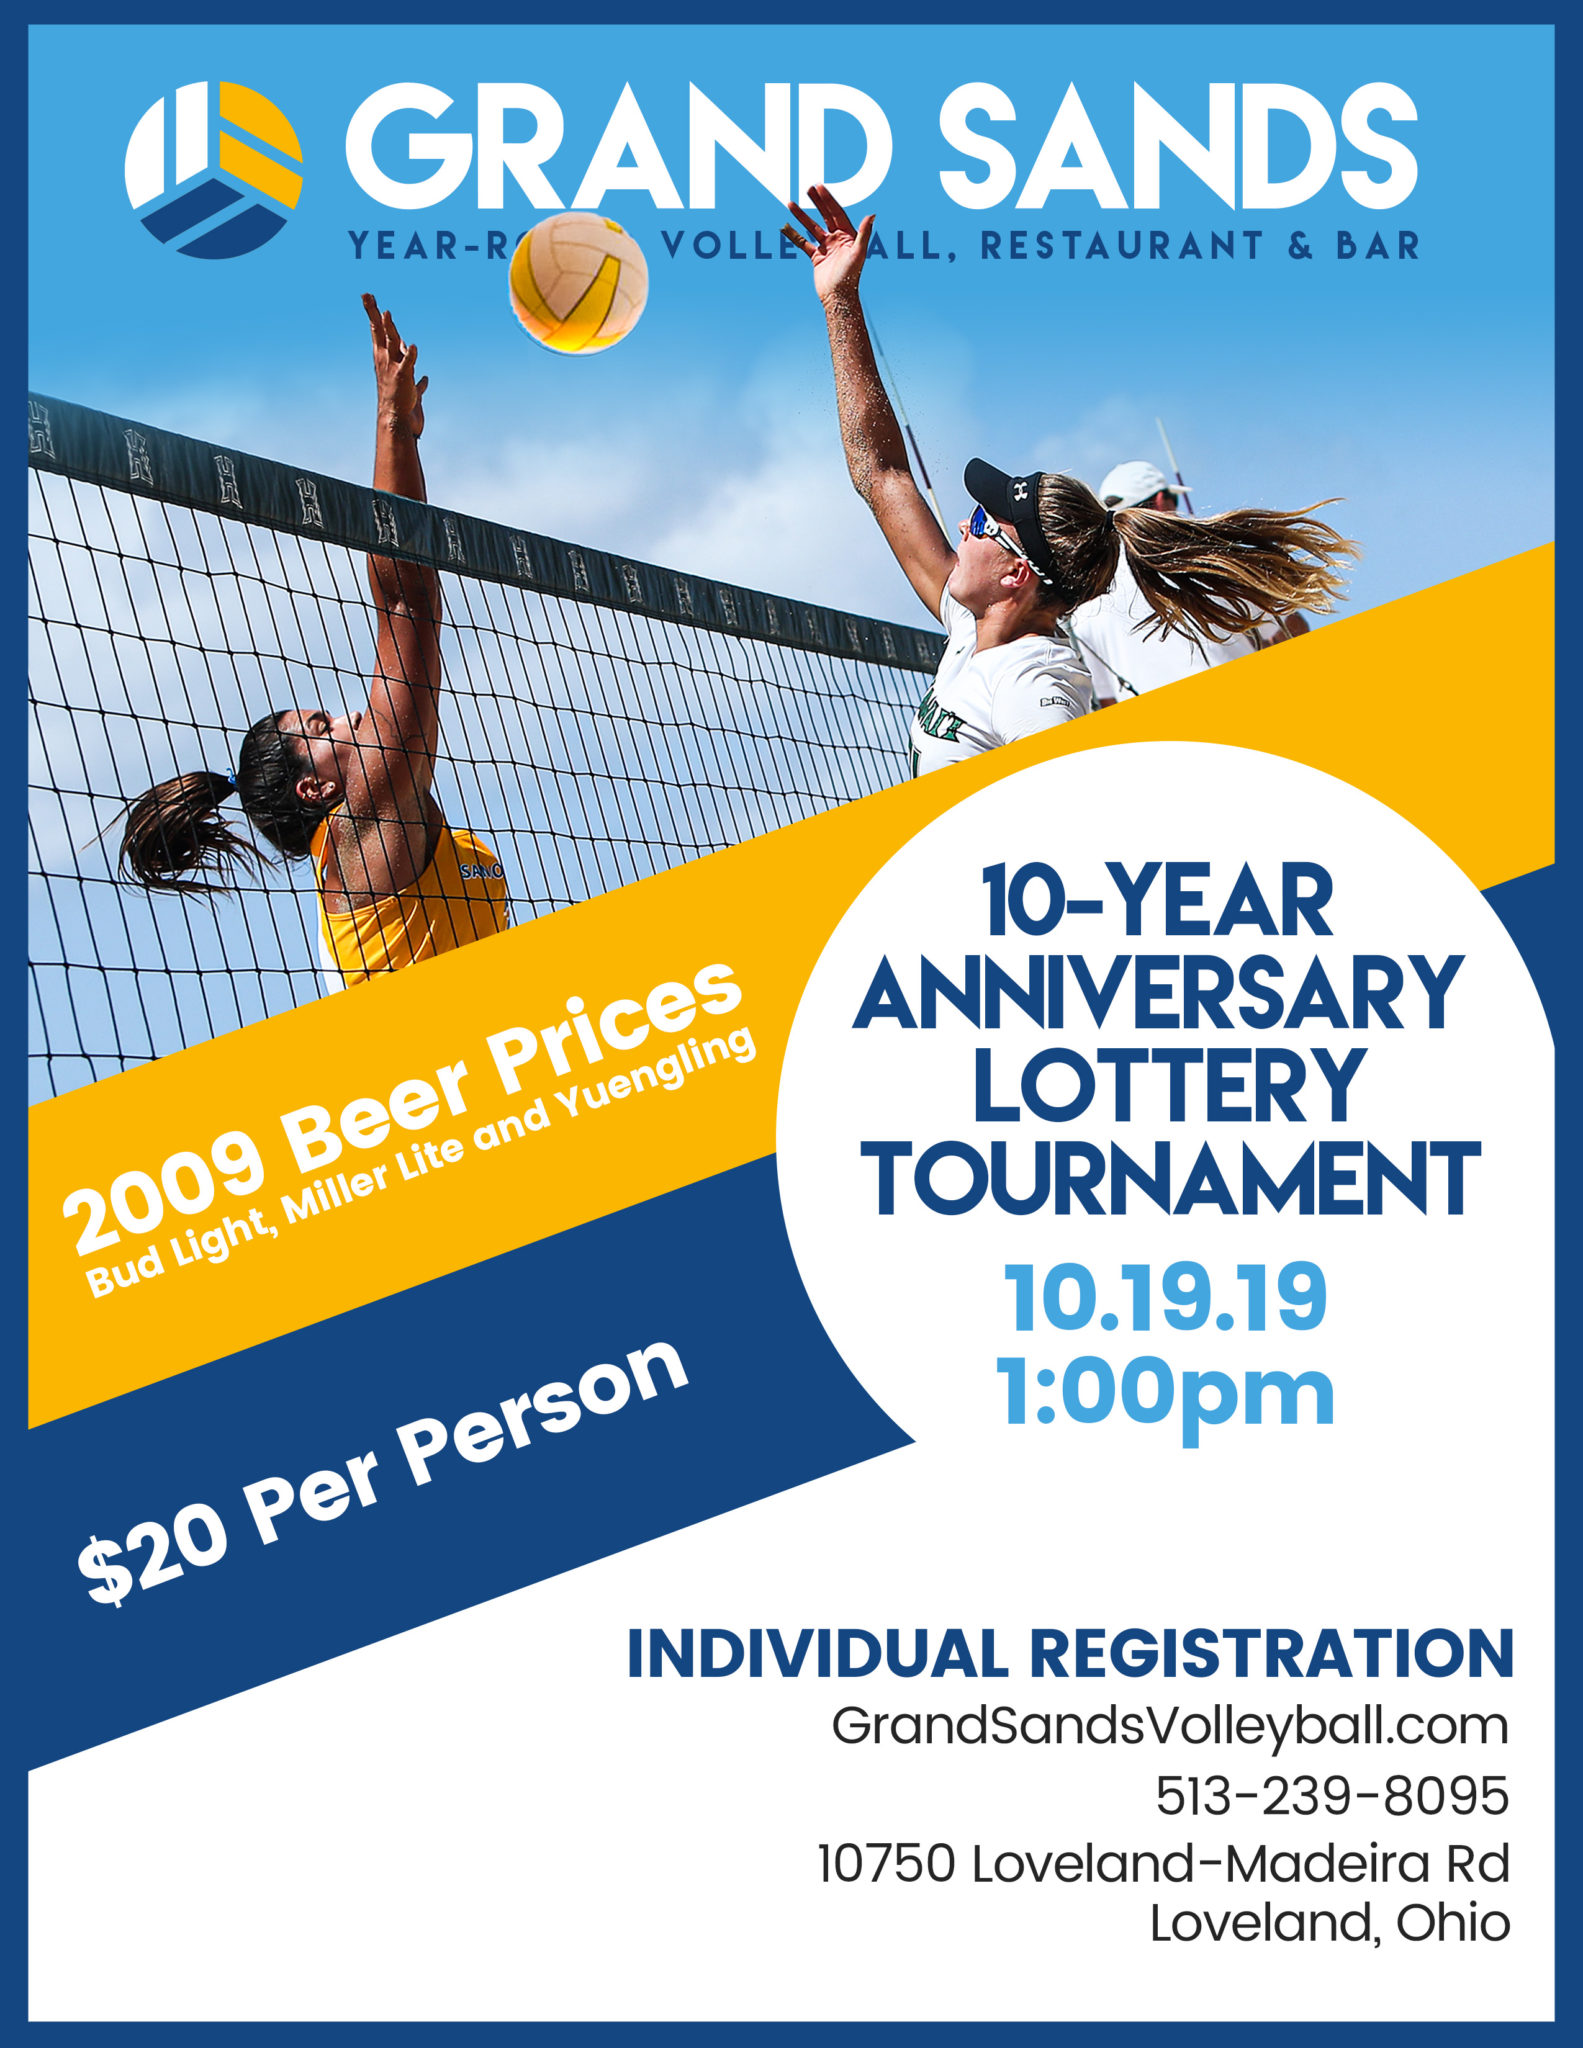 Grand Sands Volleyball 10 Year Anniversary Lottery Tourney